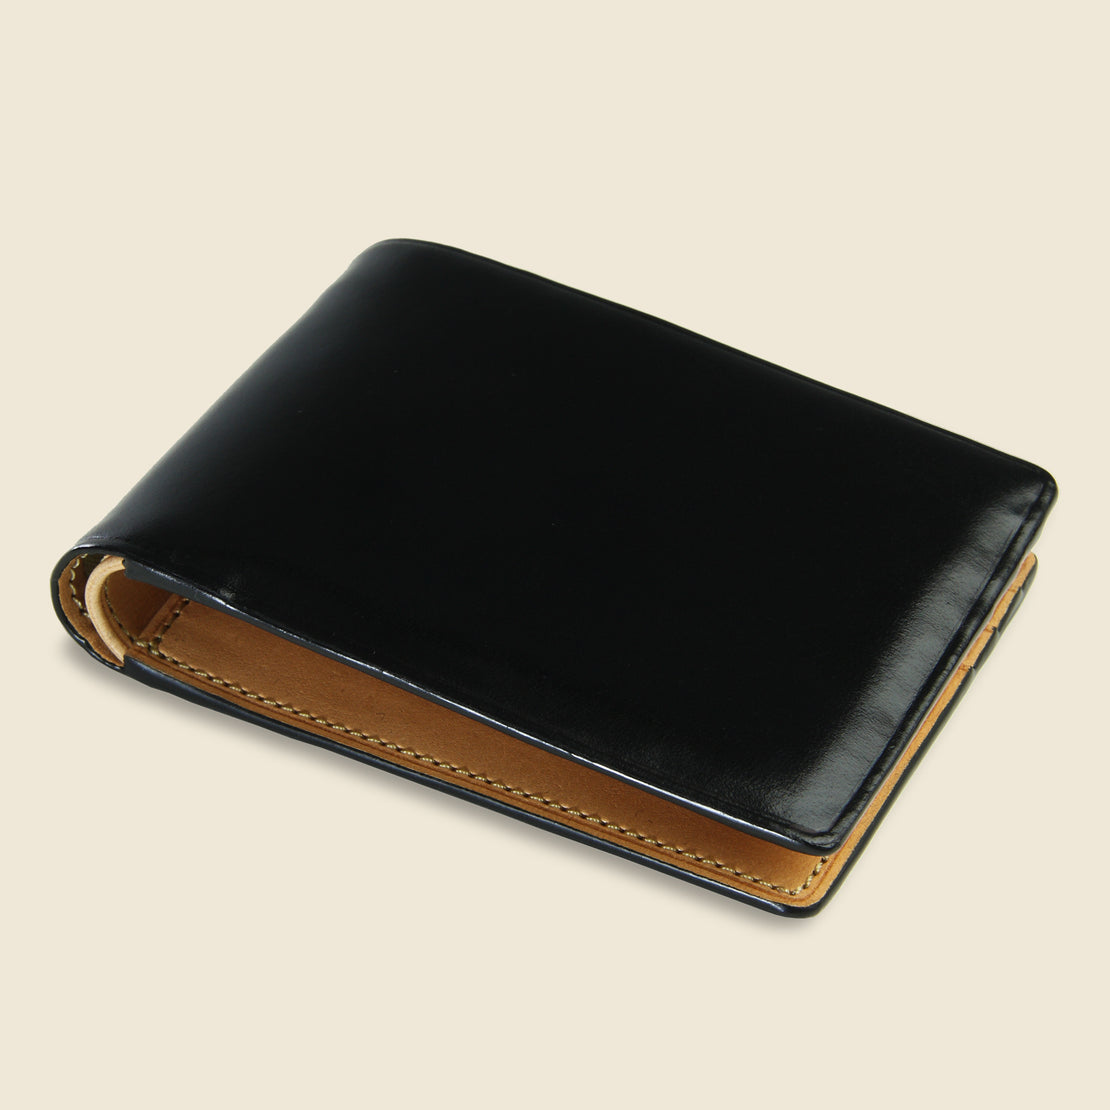 Small Bi-Fold Wallet - Black - Il Bussetto - STAG Provisions - Accessories - Wallets